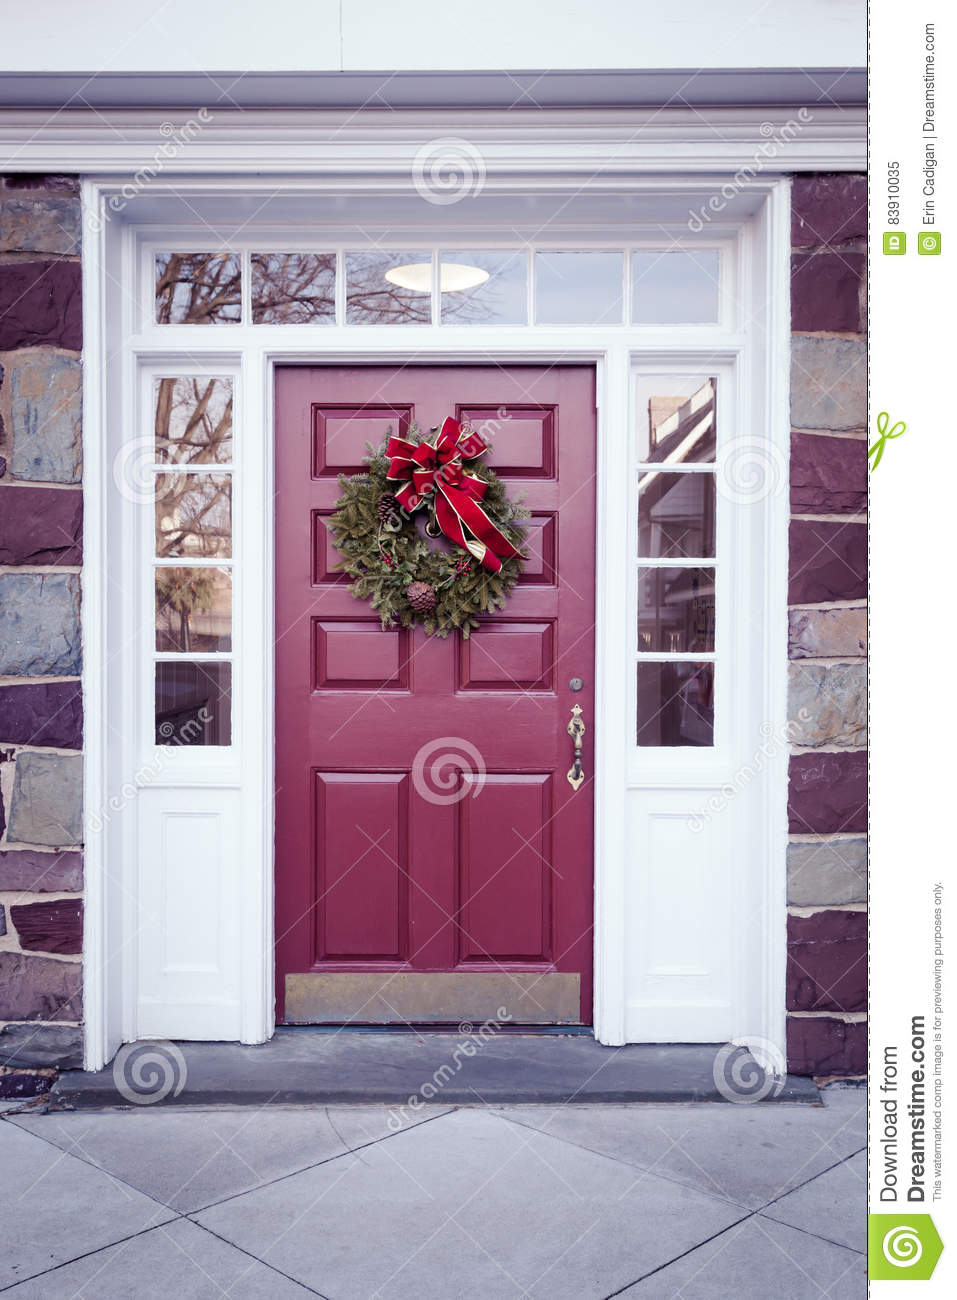 Door with Christmas Wreath